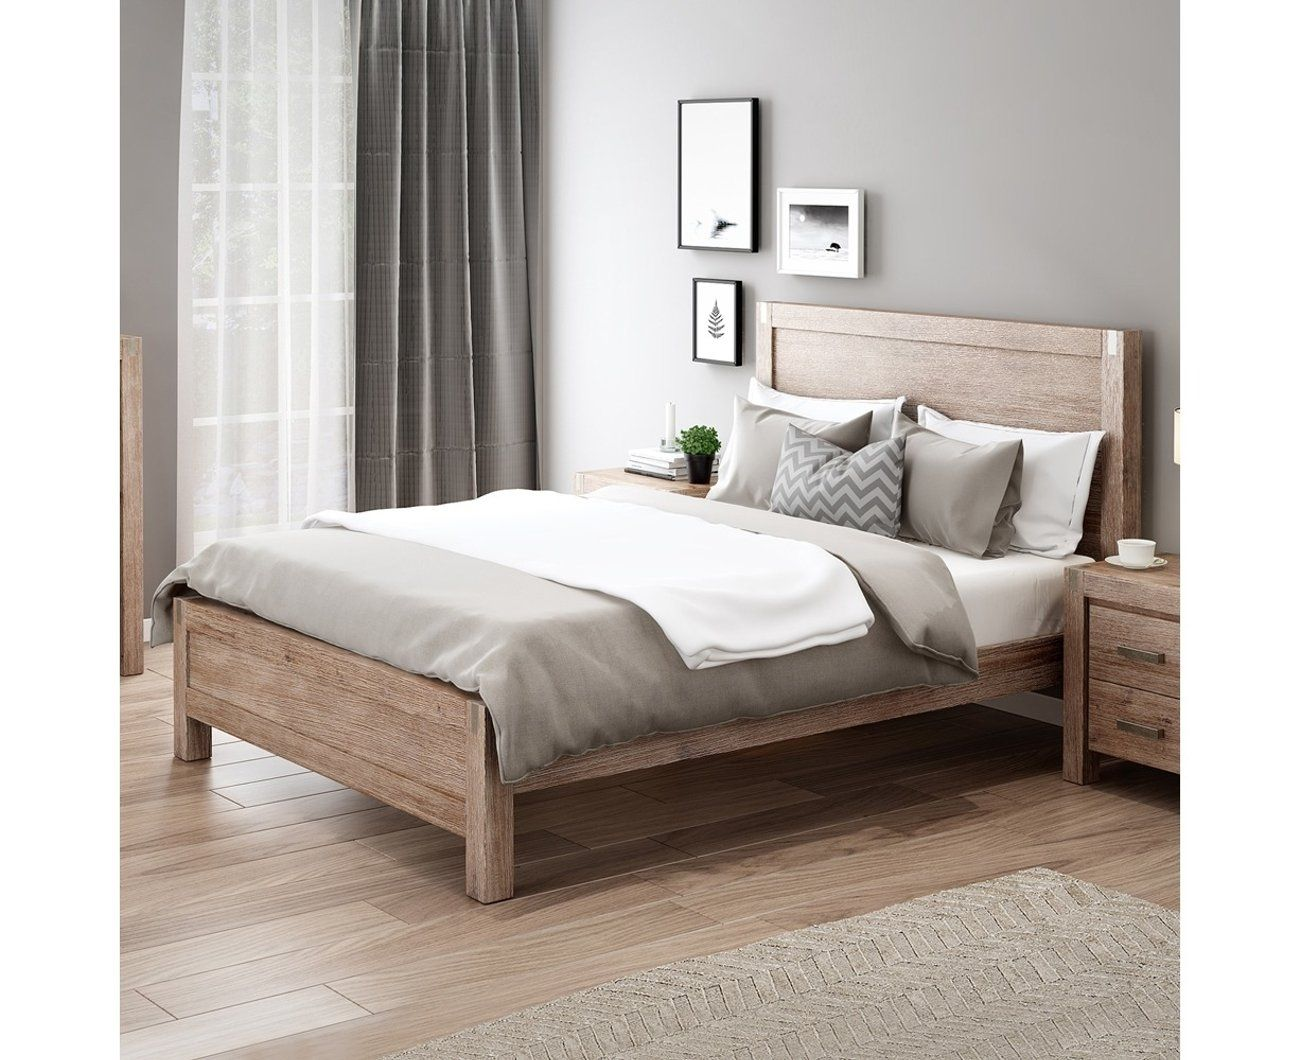 Nowra Bed Frame in Light Oak Colour Bedroom Furniture with Solid Wooden Base